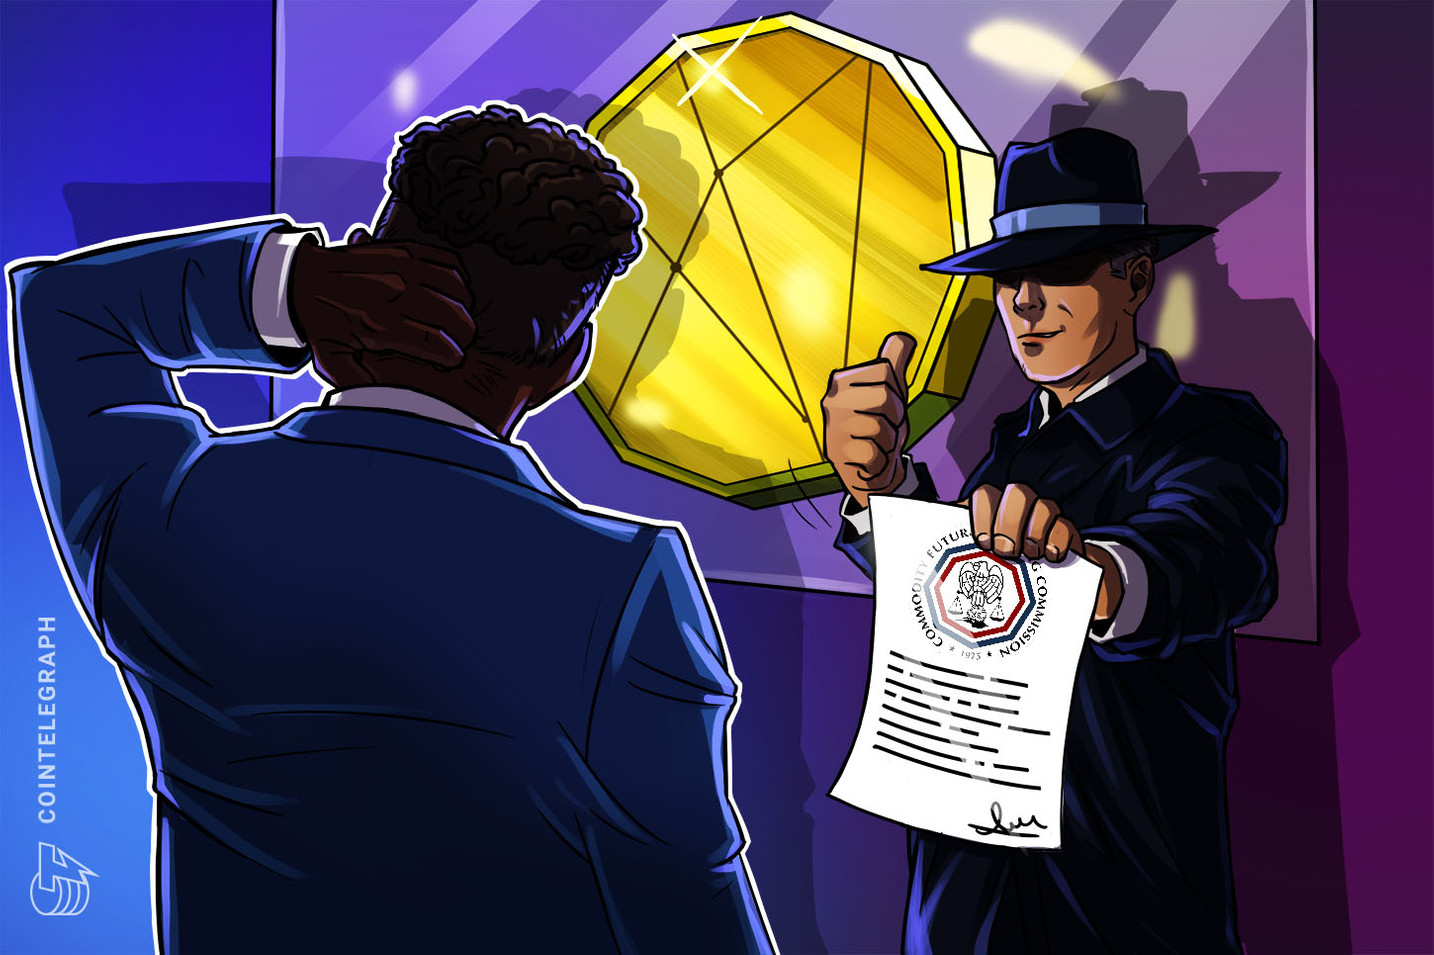 CFTC acusa BitMex de operar uma exchange de derivativos de forma ilegal